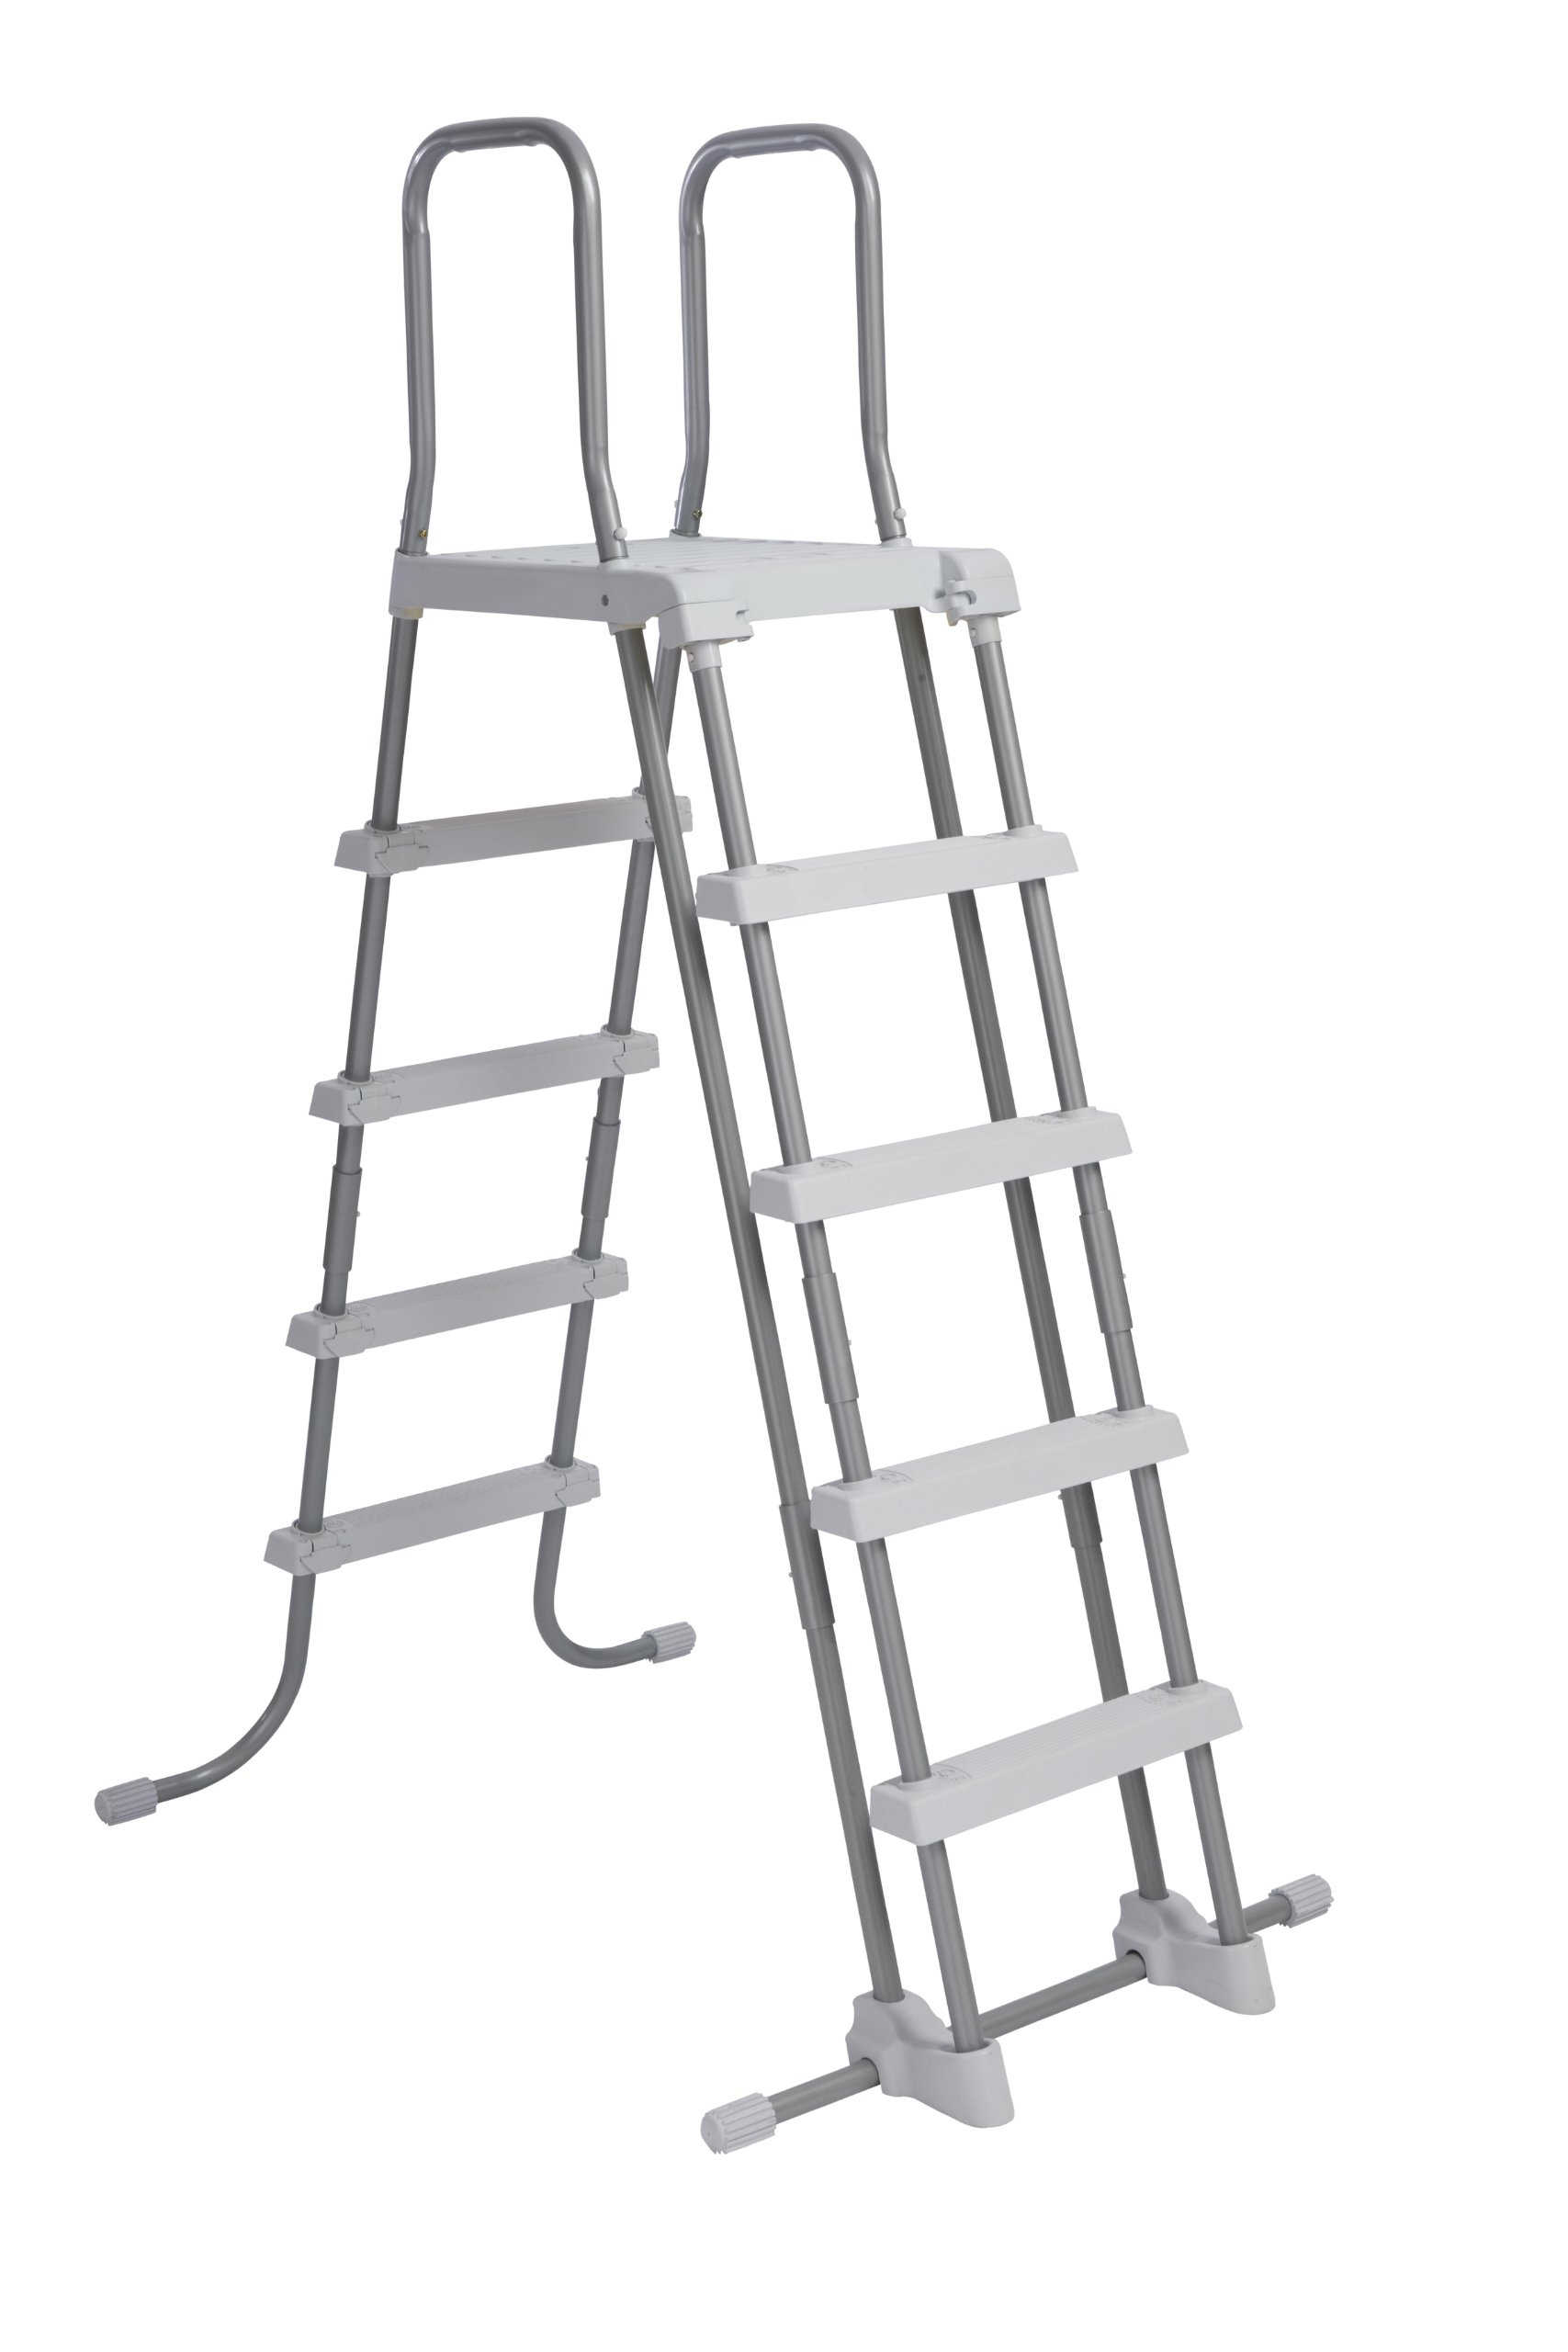 Intex Deluxe Pool Ladder With Removable Steps For 48-Inch And 52-Inch Wall He.. 2